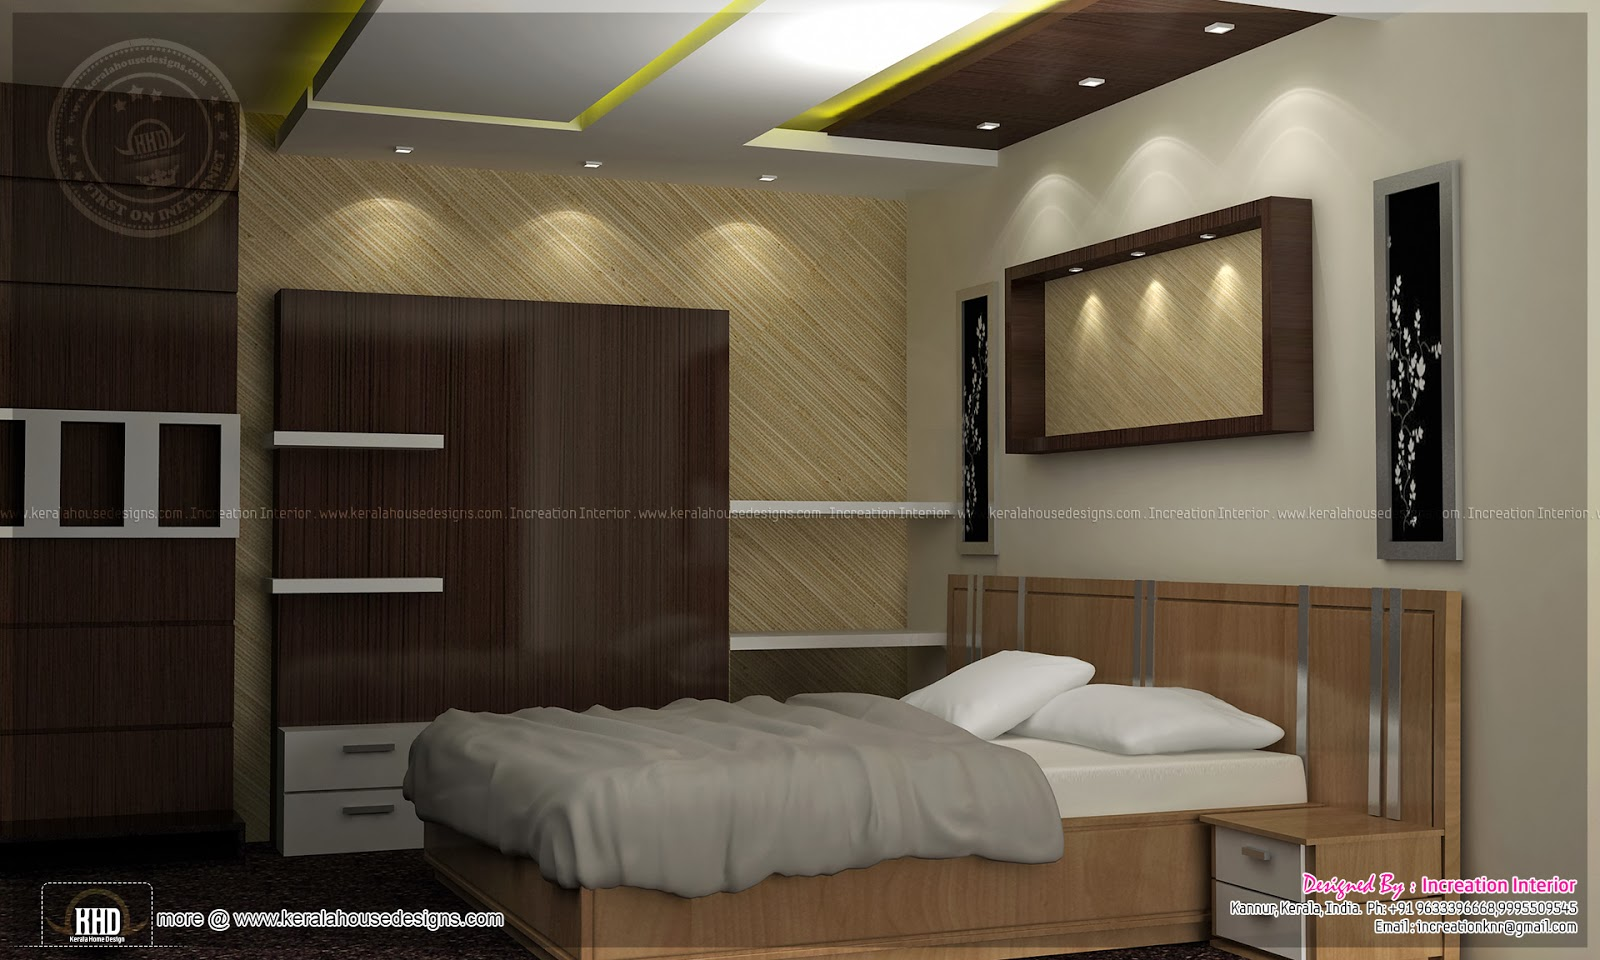 Bedroom interior designs indian house plans for Interior designs for home